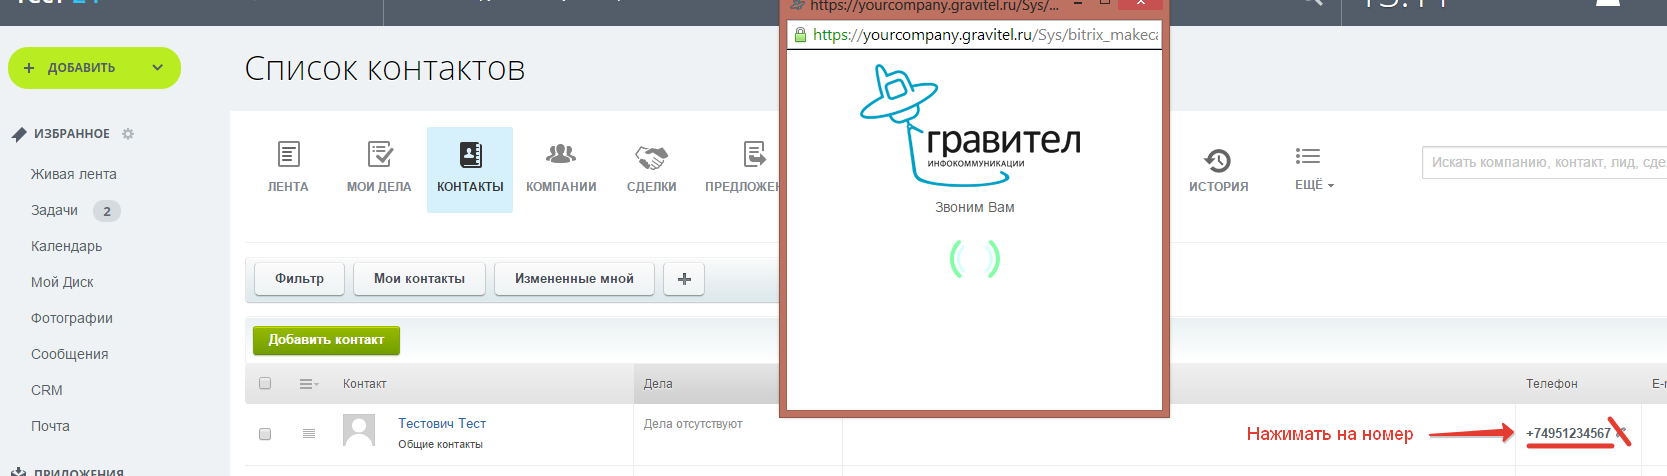 2014-11-29 13-11-01 https   yourcompany.gravitel.ru Sys bitrix_makecall.wcgp phone=+74951234567 - Google Chrome